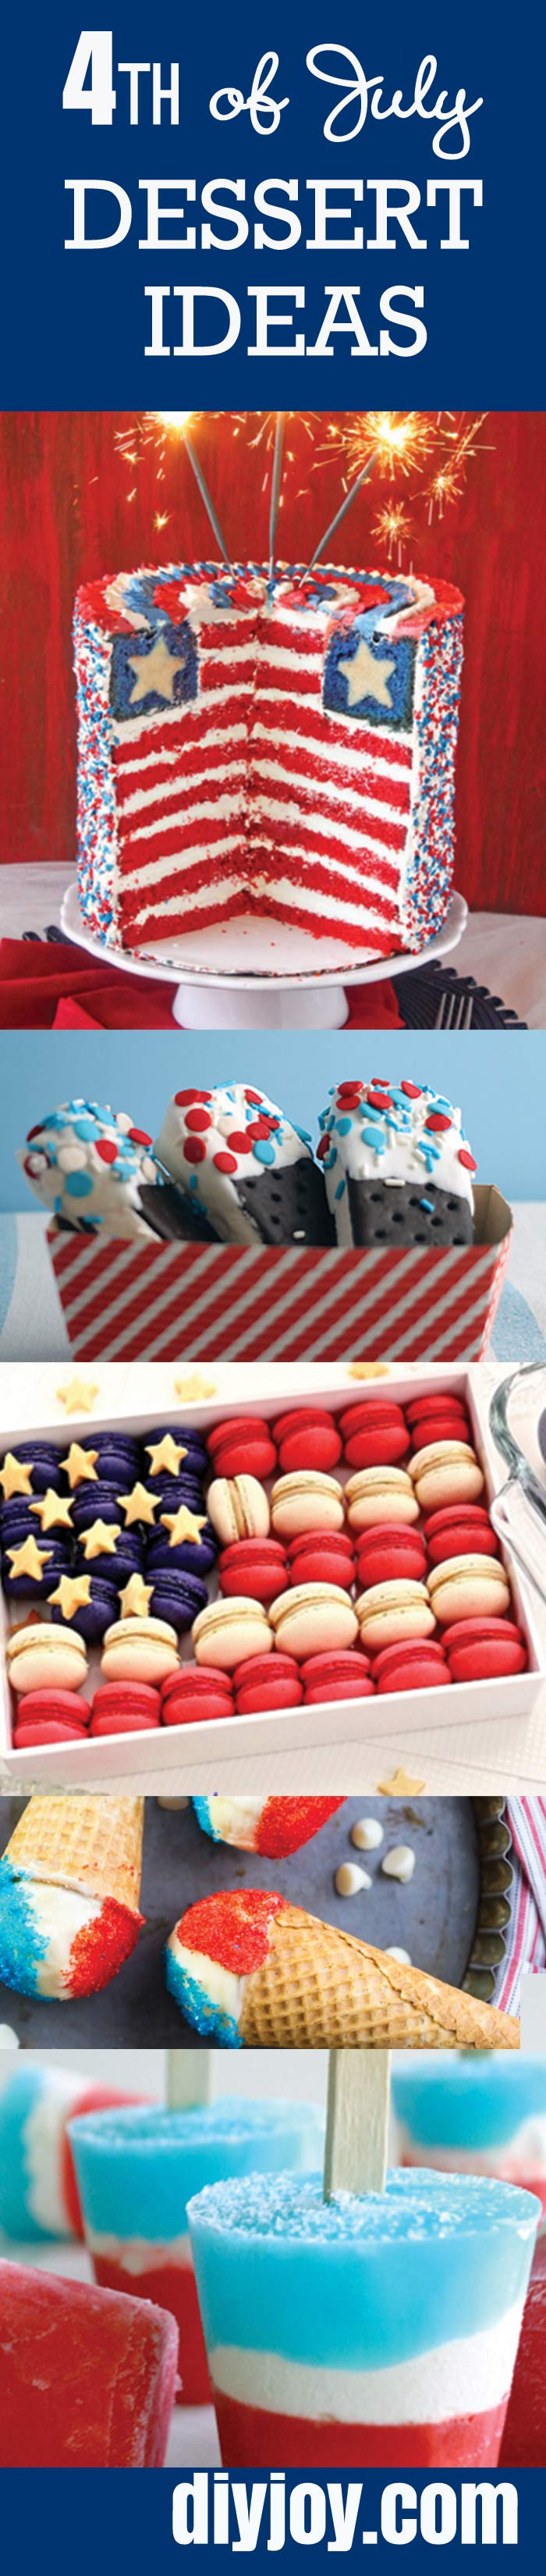 4th of July Dessert Ideas   Best Dessert Ideas for DIY Parties   DIY Projects & Crafts by DIY JOY at http://diyjoy.com/4th-of-july-desserts-pinterest